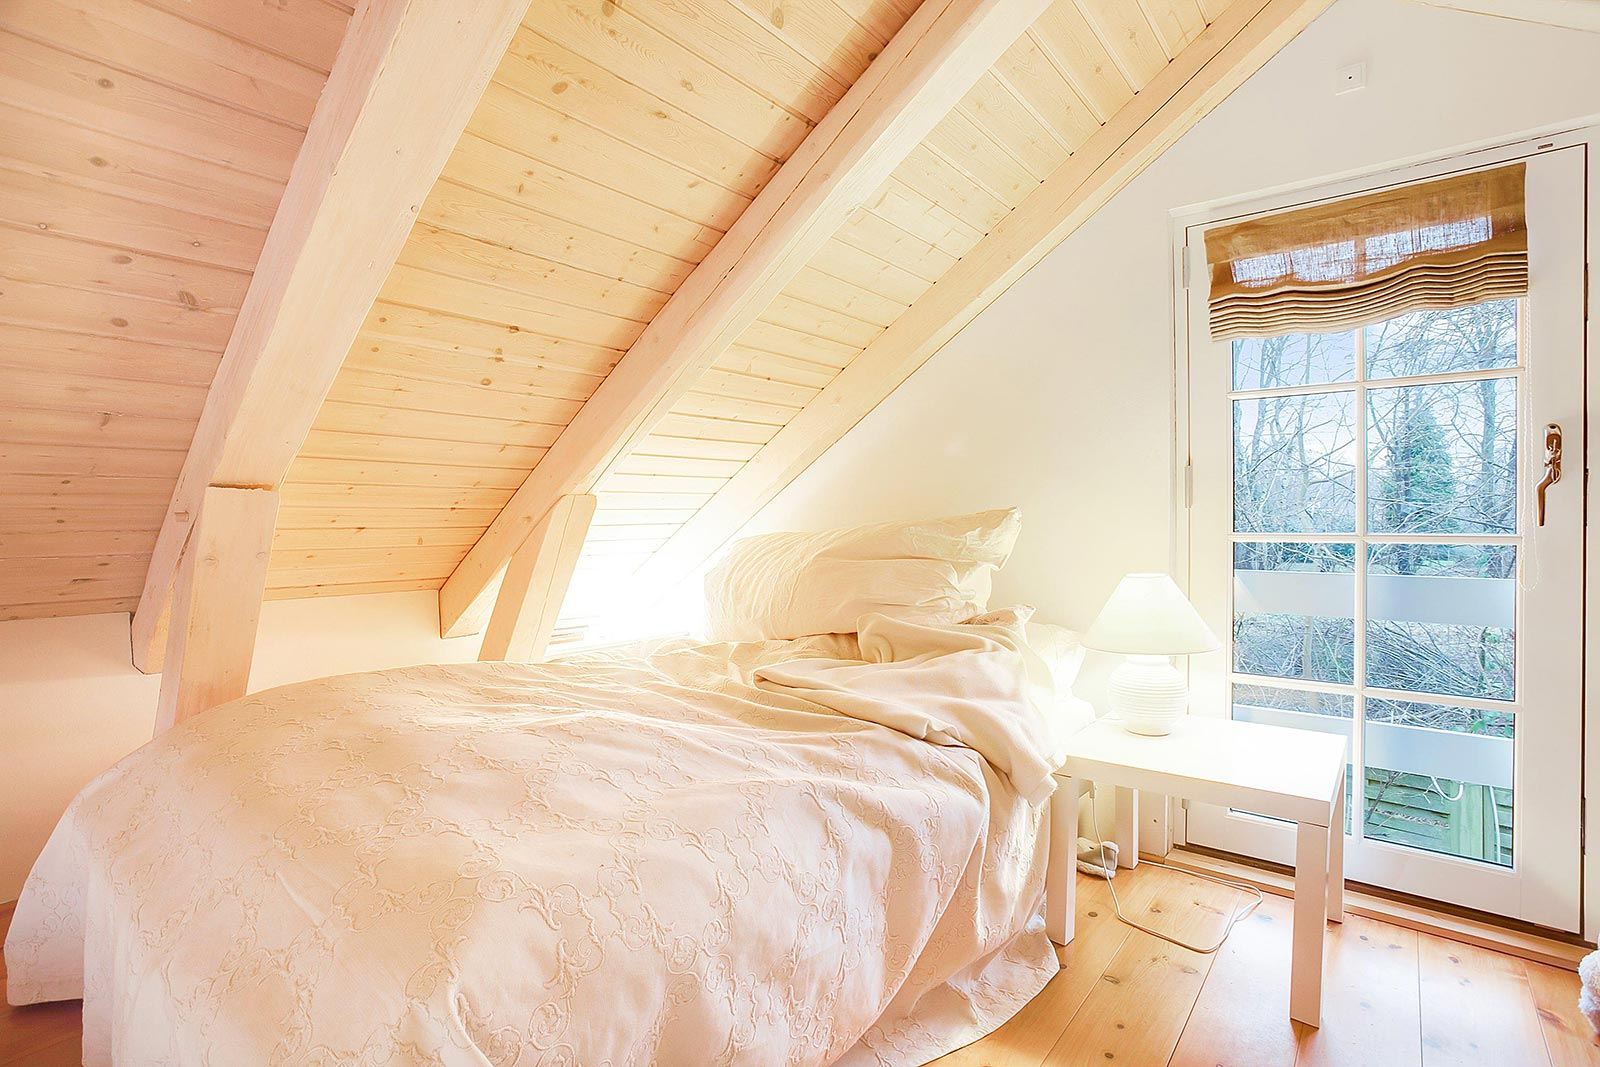 Bright and cozy bedroom